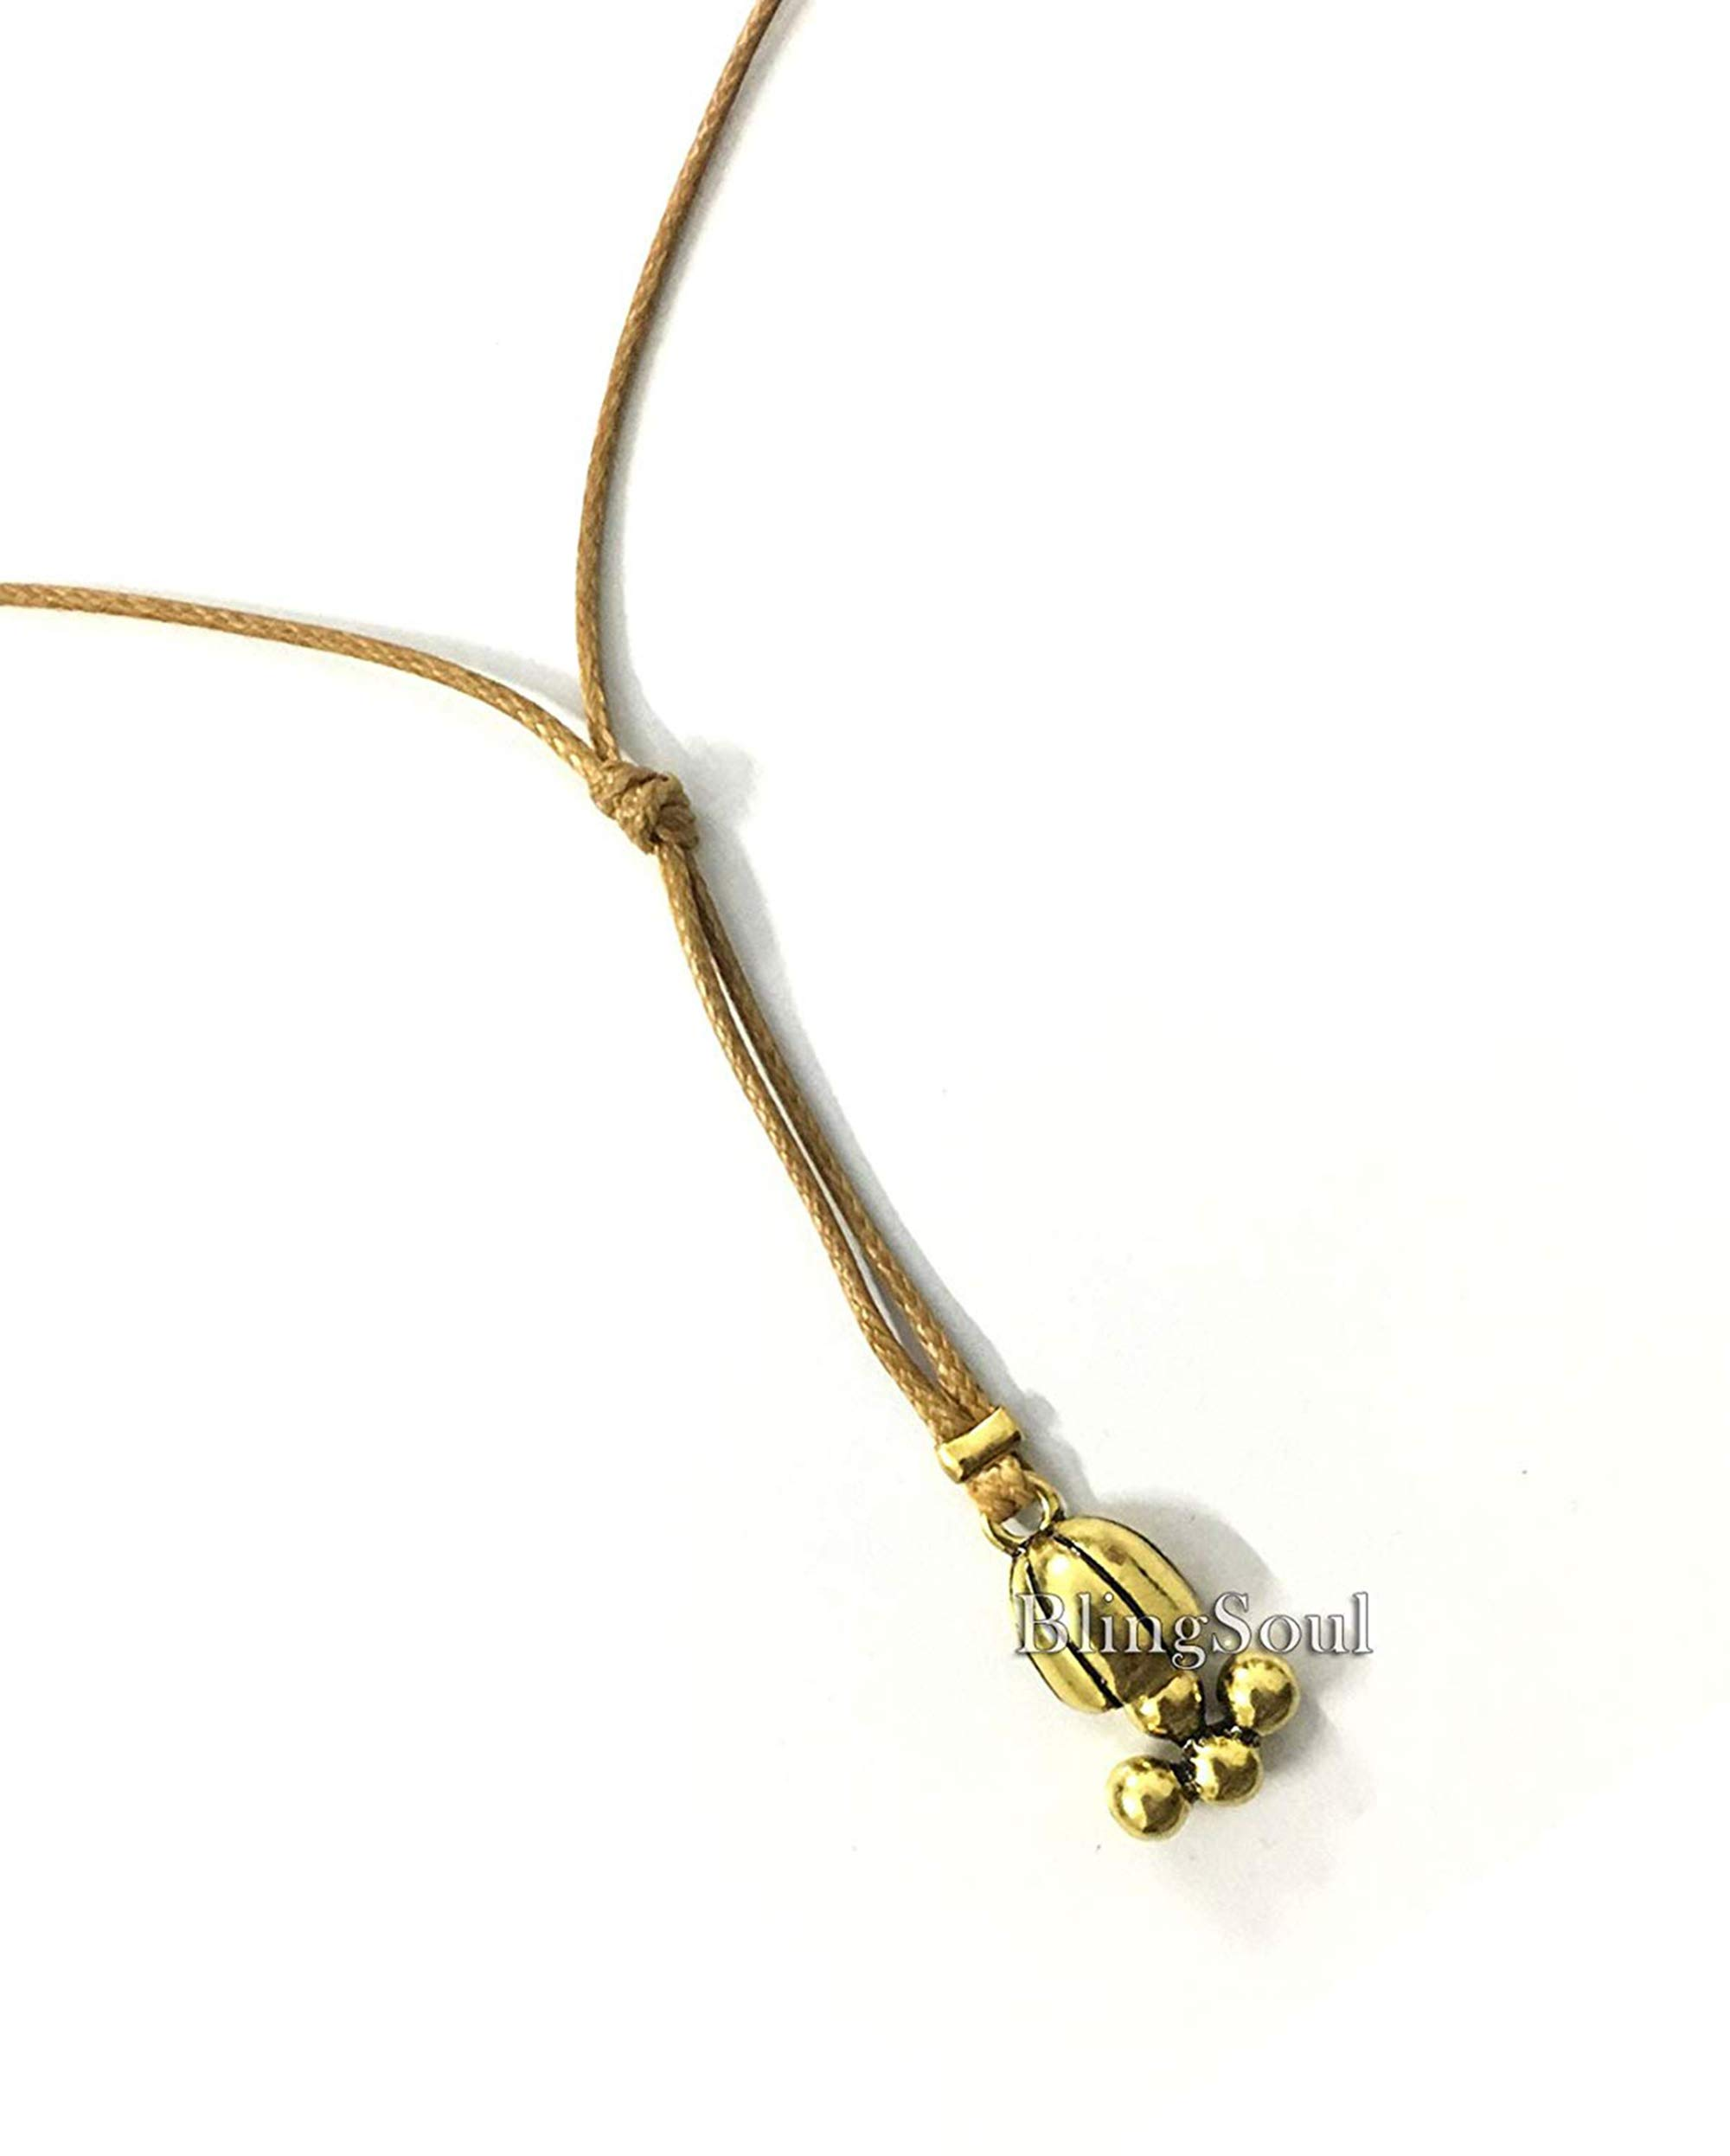 Emma Watson Belle lariat Necklace - Beauty and The Beast Jewelry Merchandise Gifts For Girls